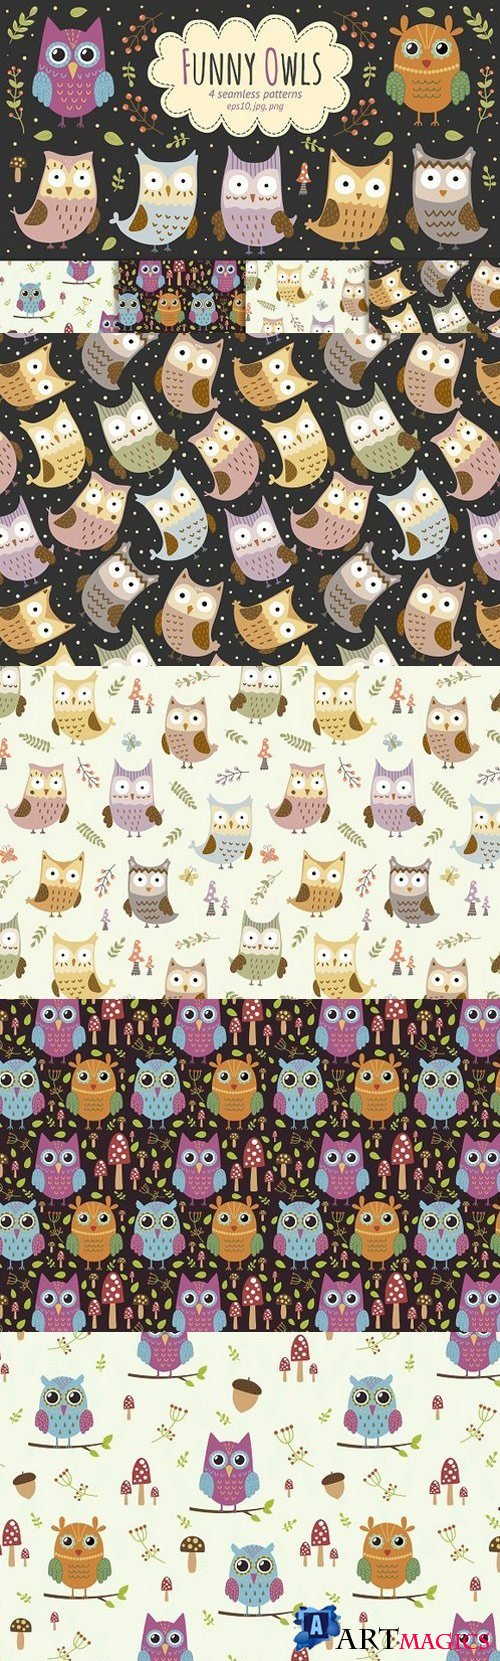 Funny Owls: 4 seamless patterns 924232